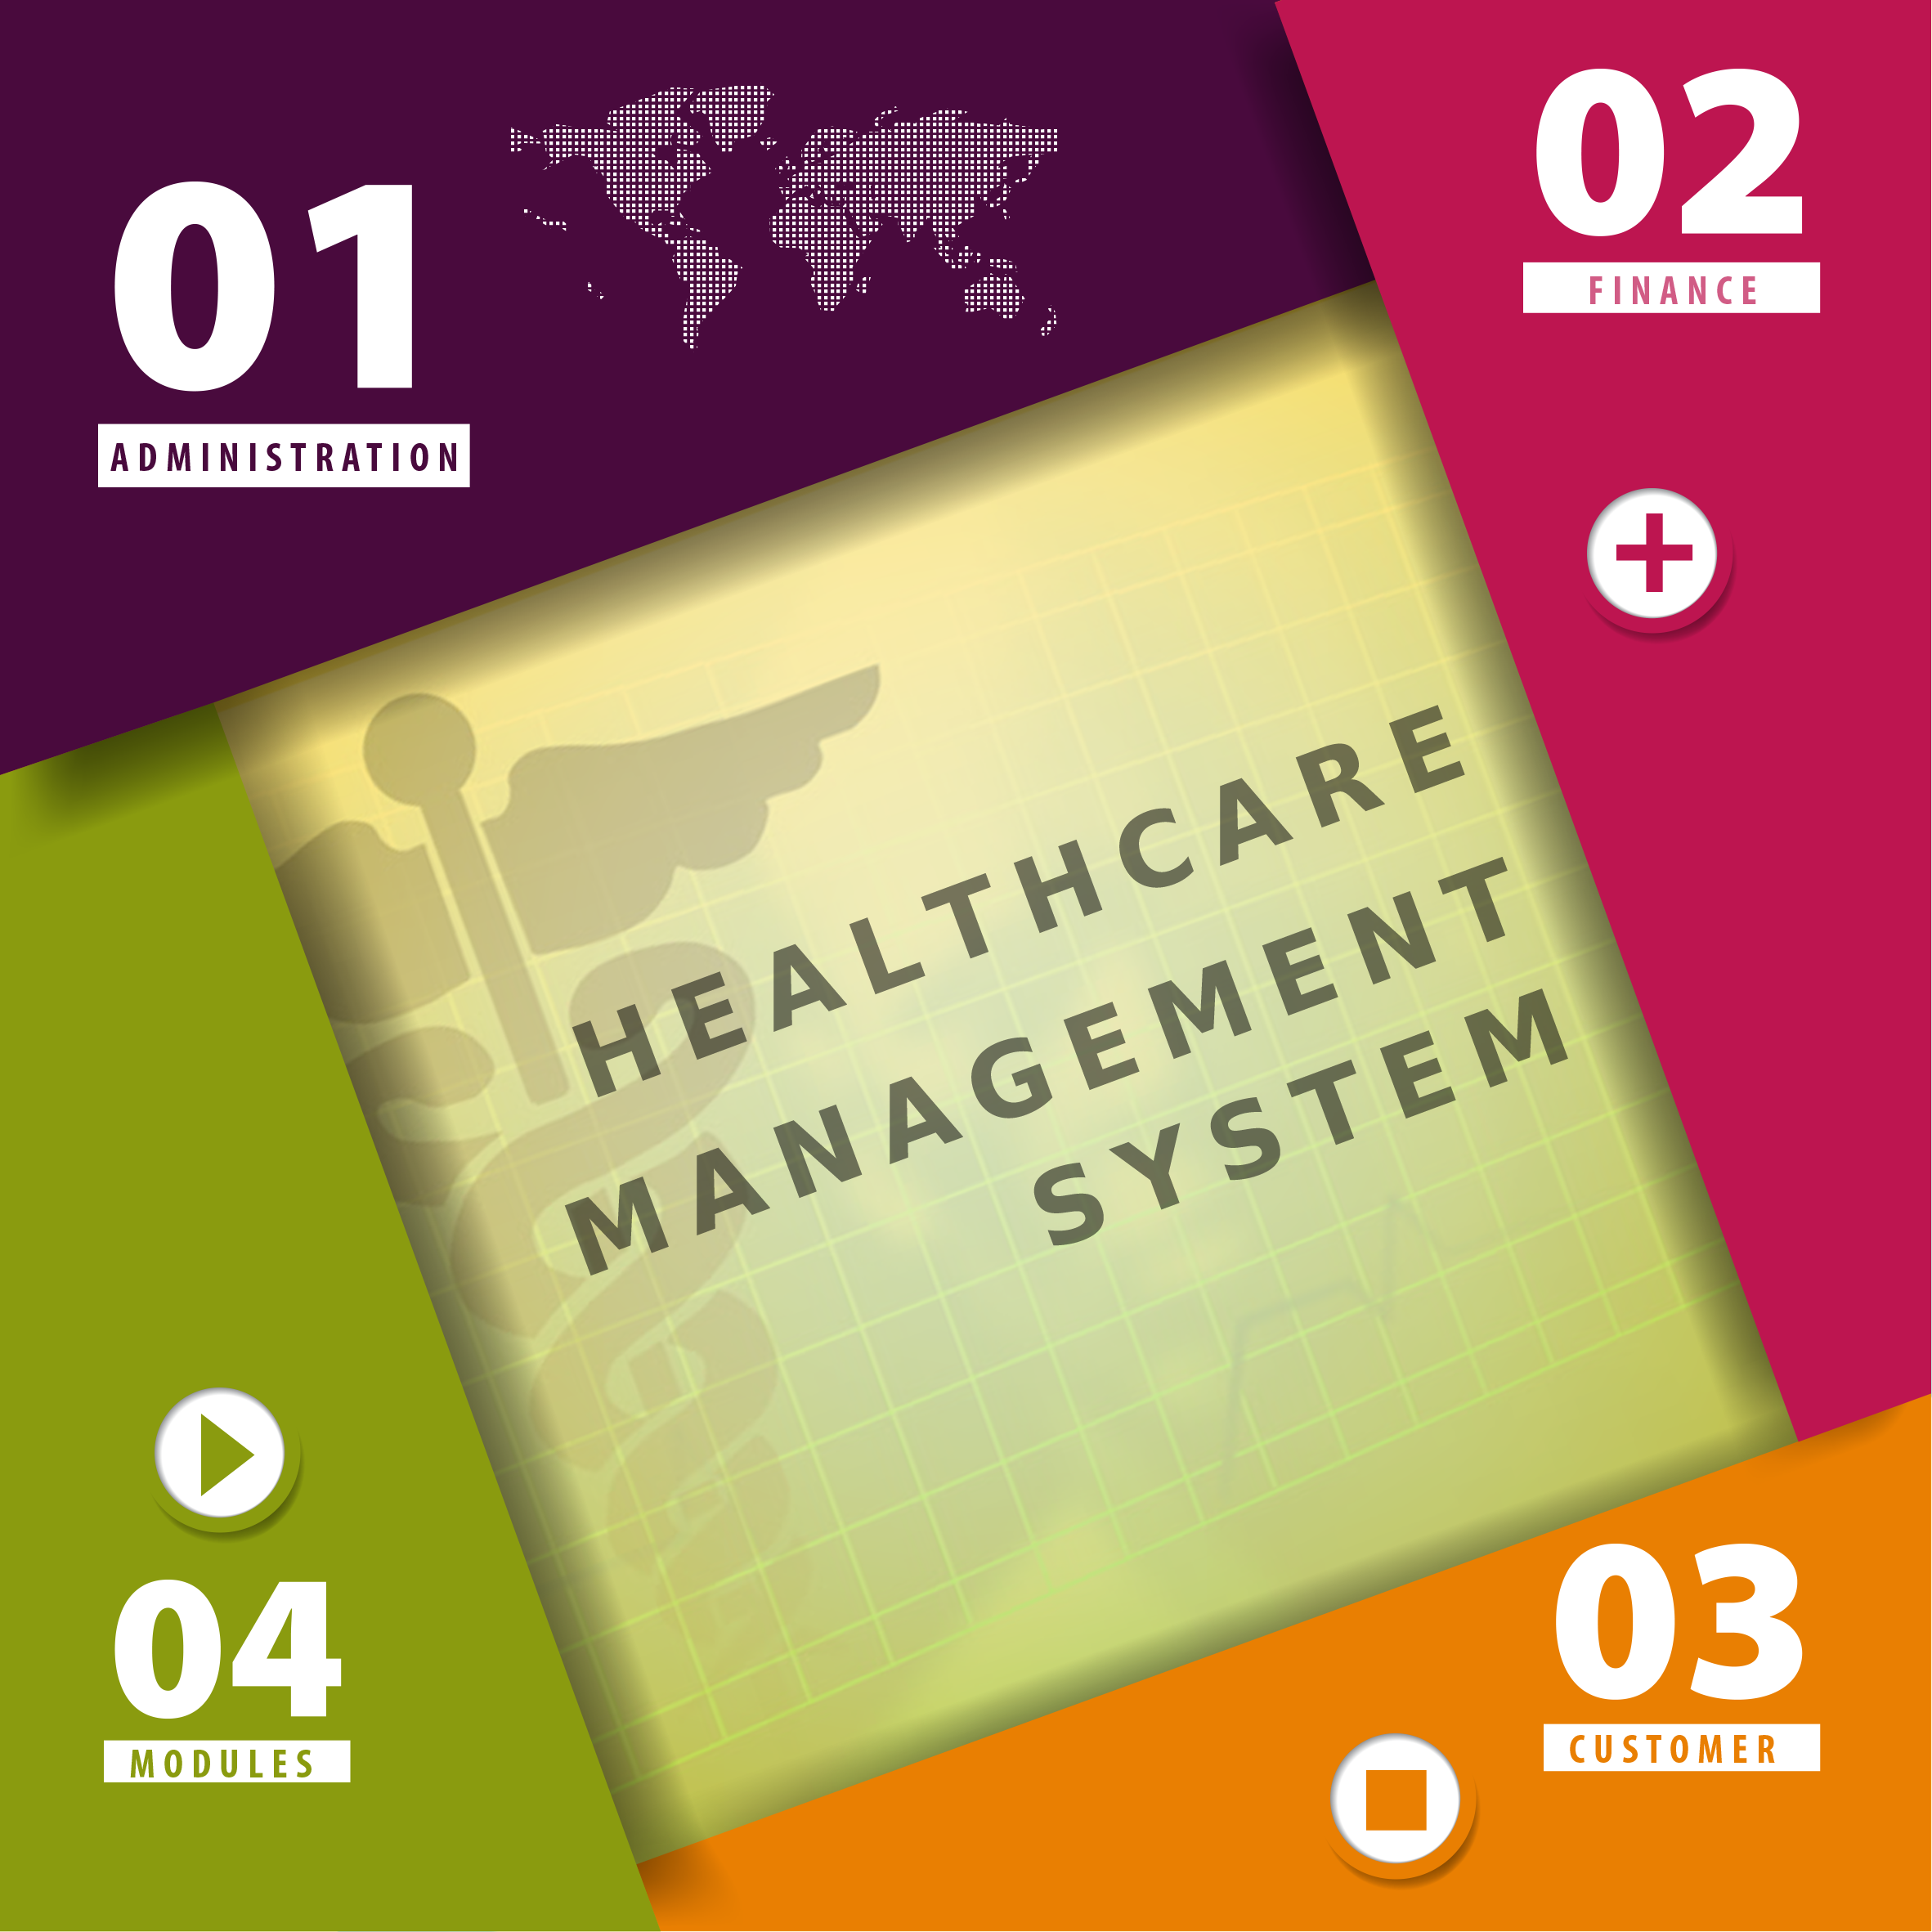 SummationIT hospital mgmt system